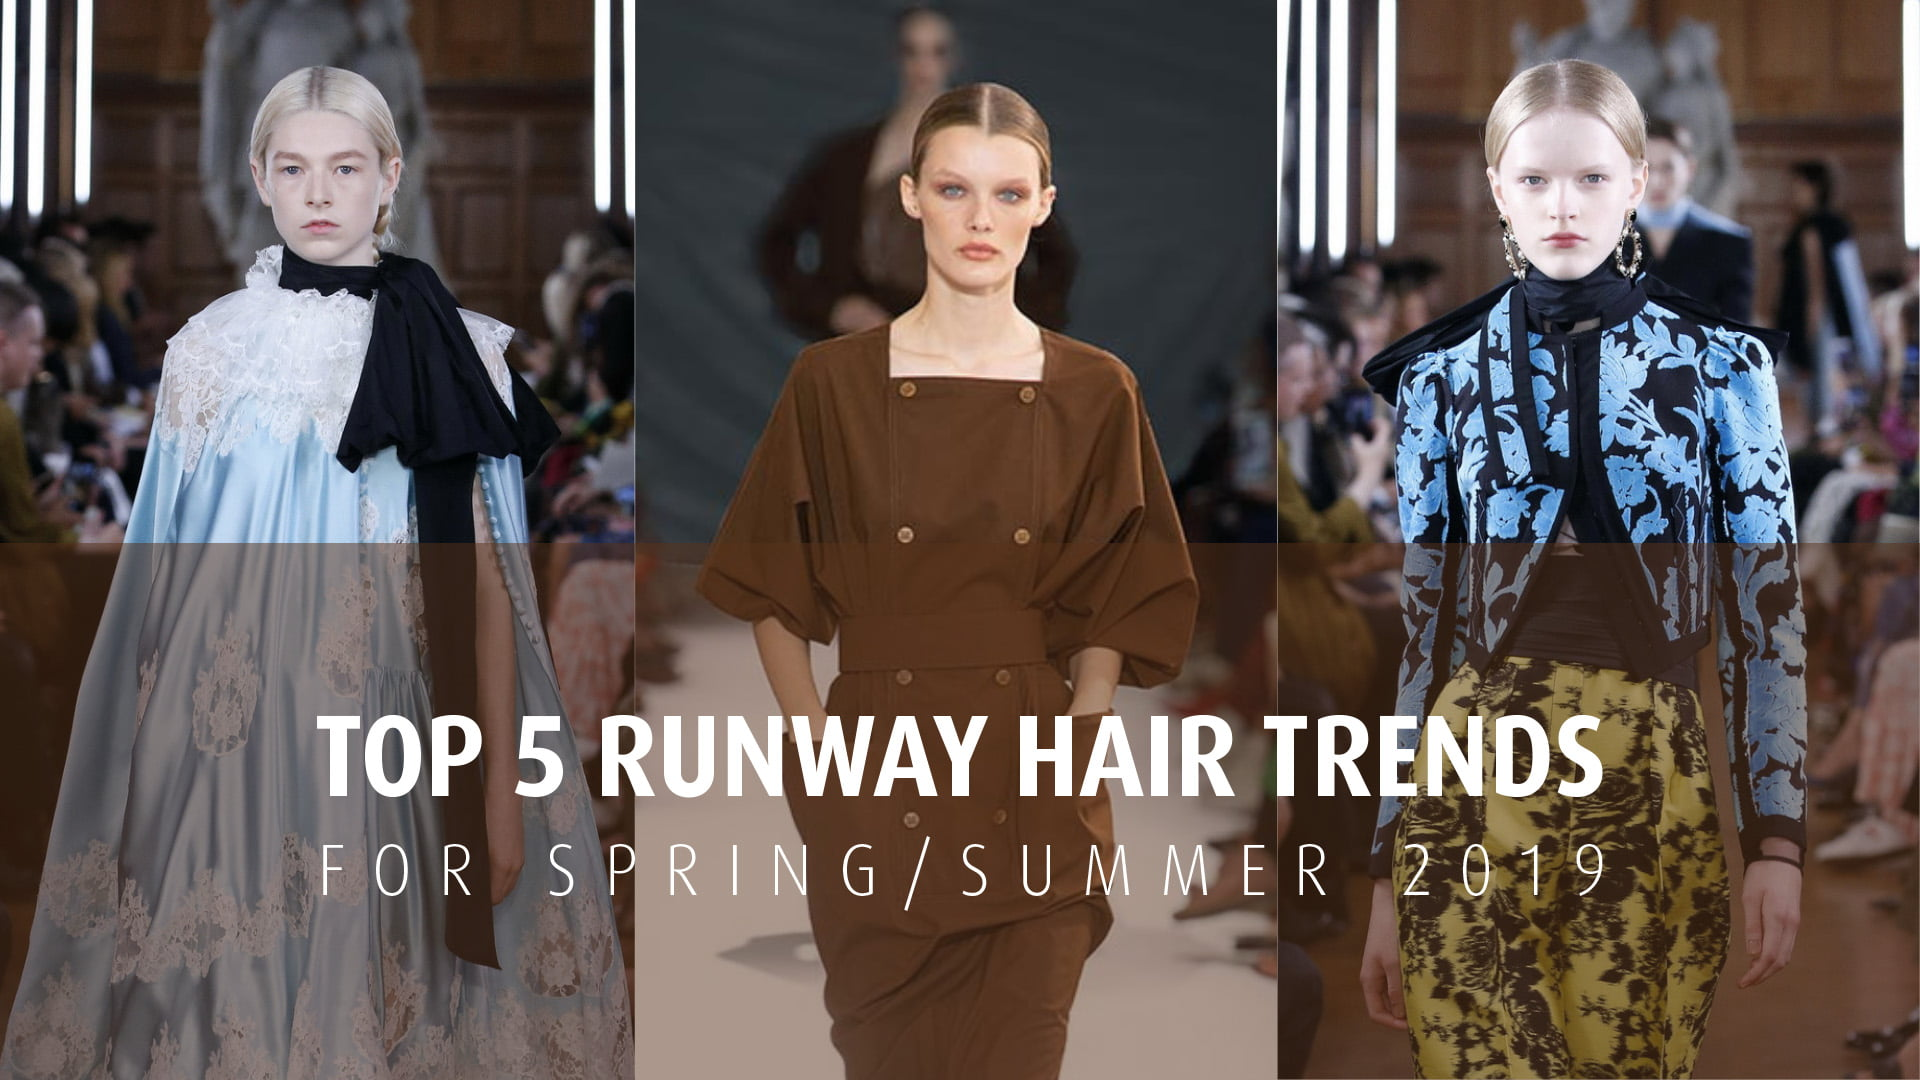 Three models on runway hair style trends